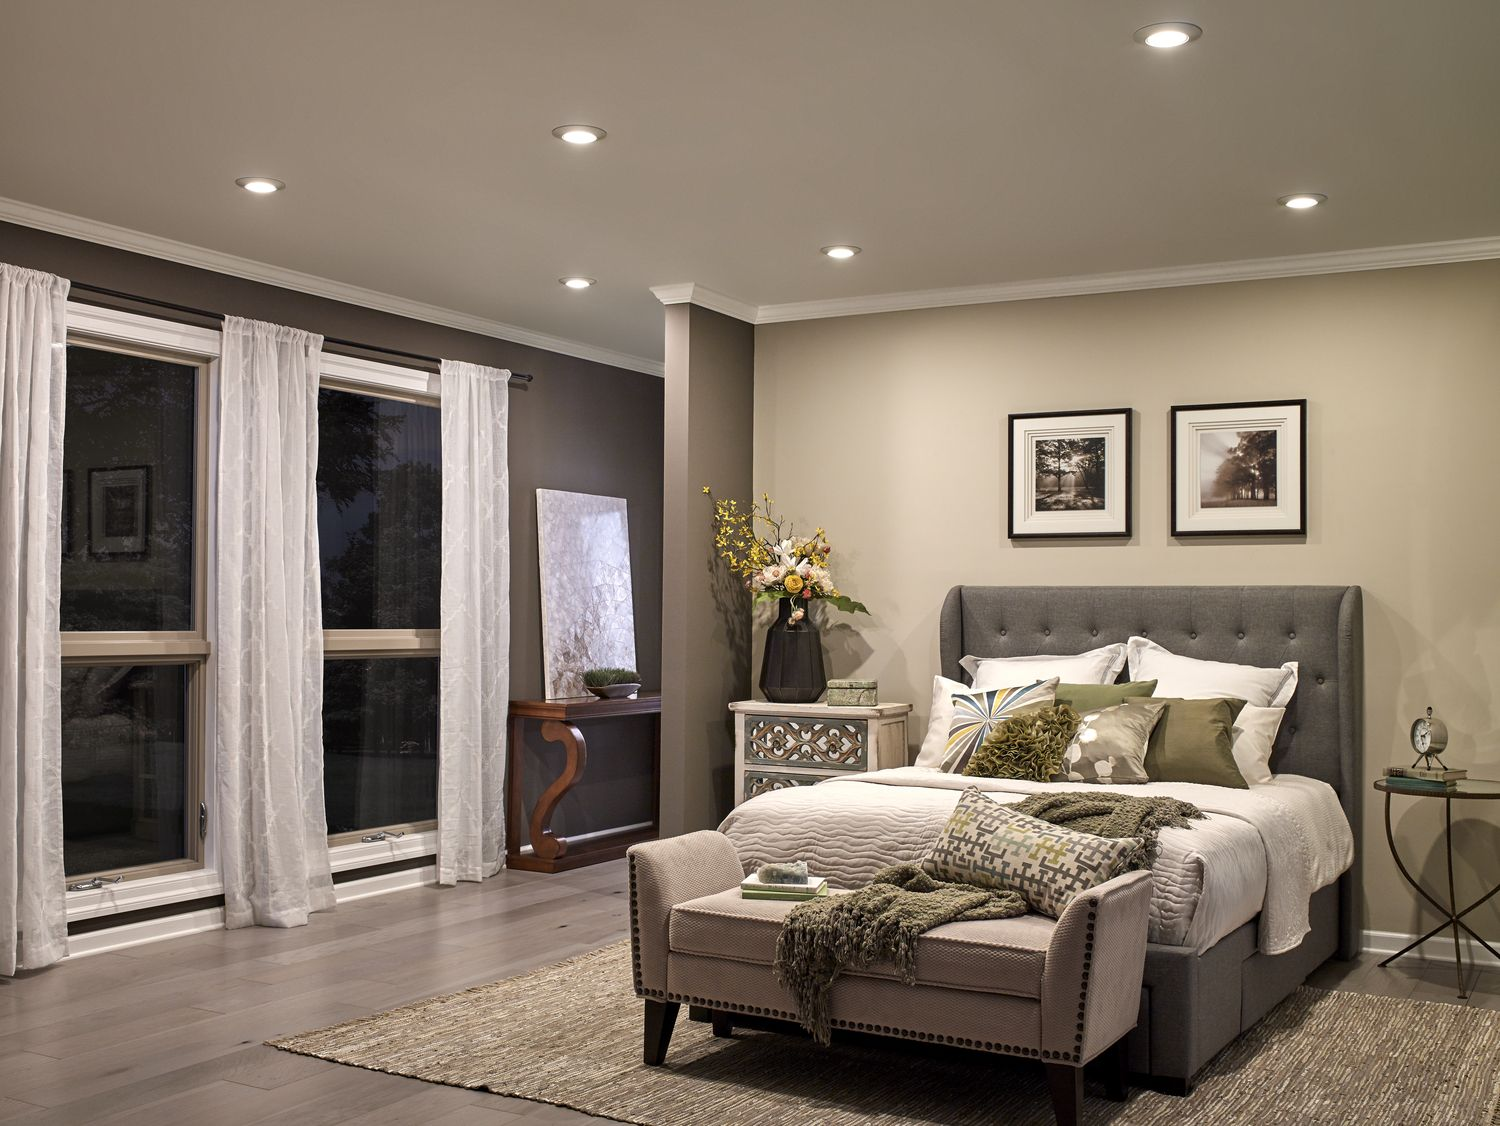 The 3000K LED Horizon downlight delivers the seamless look